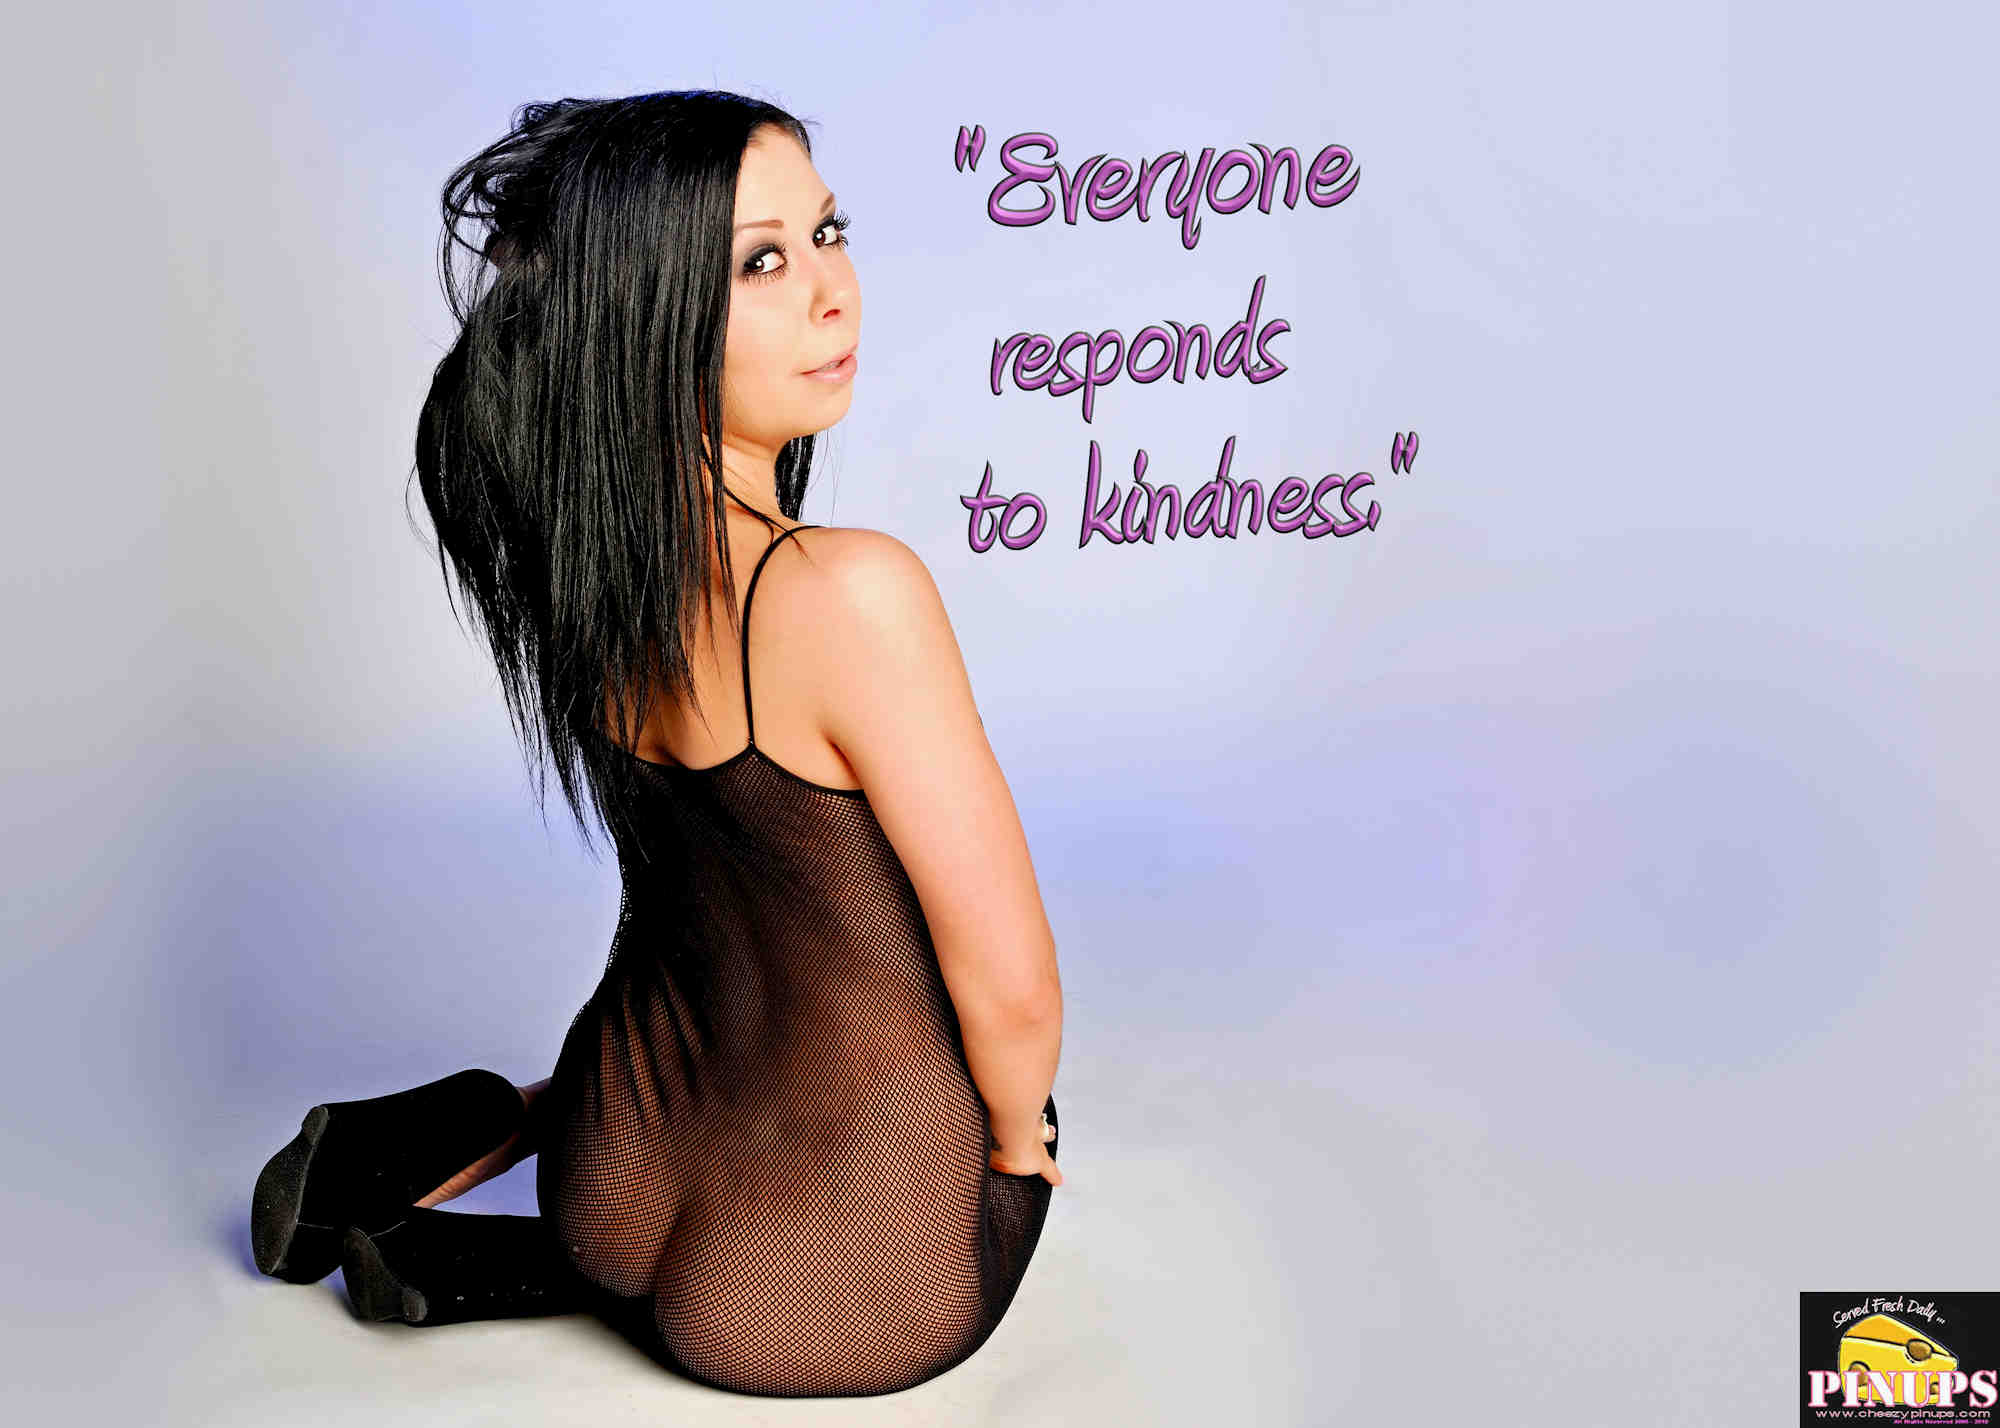 "Cheezy Pinup - August 31, 2018   ""Everyone responds to kindness."" - Richard Gere Model: Jessyka"